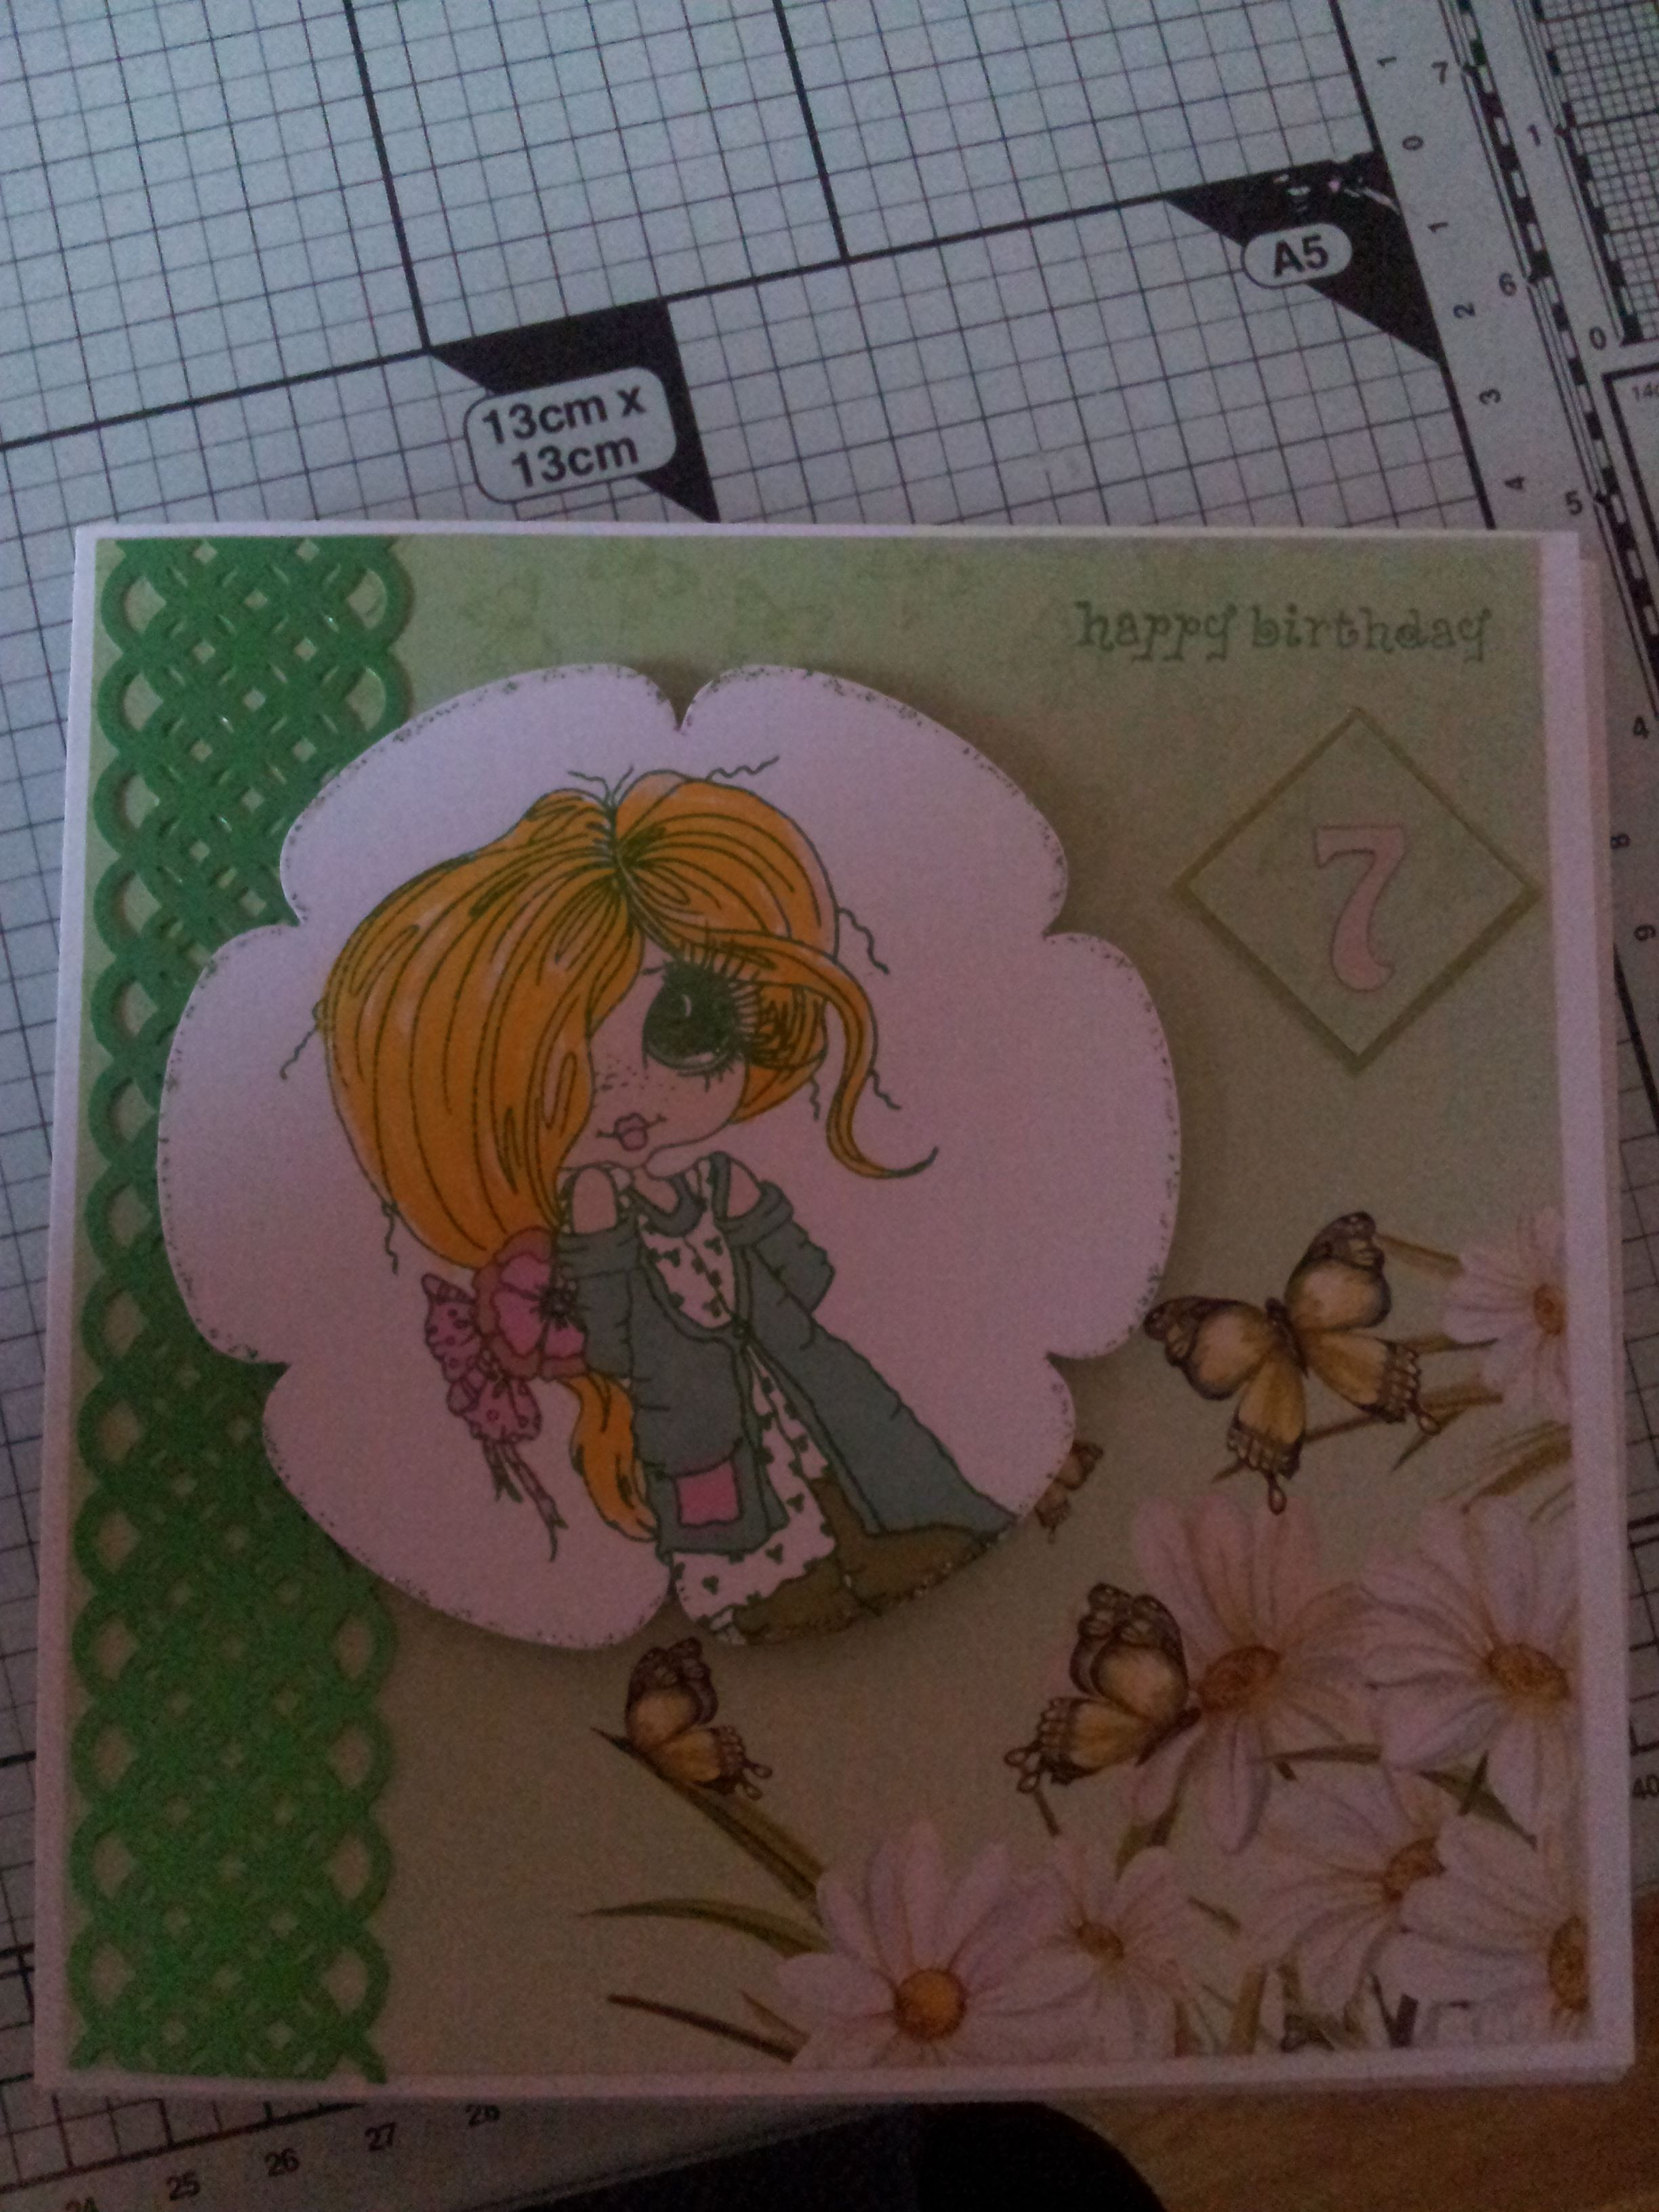 Little Girl 7th Birthday Card (With images) Cards, 7th